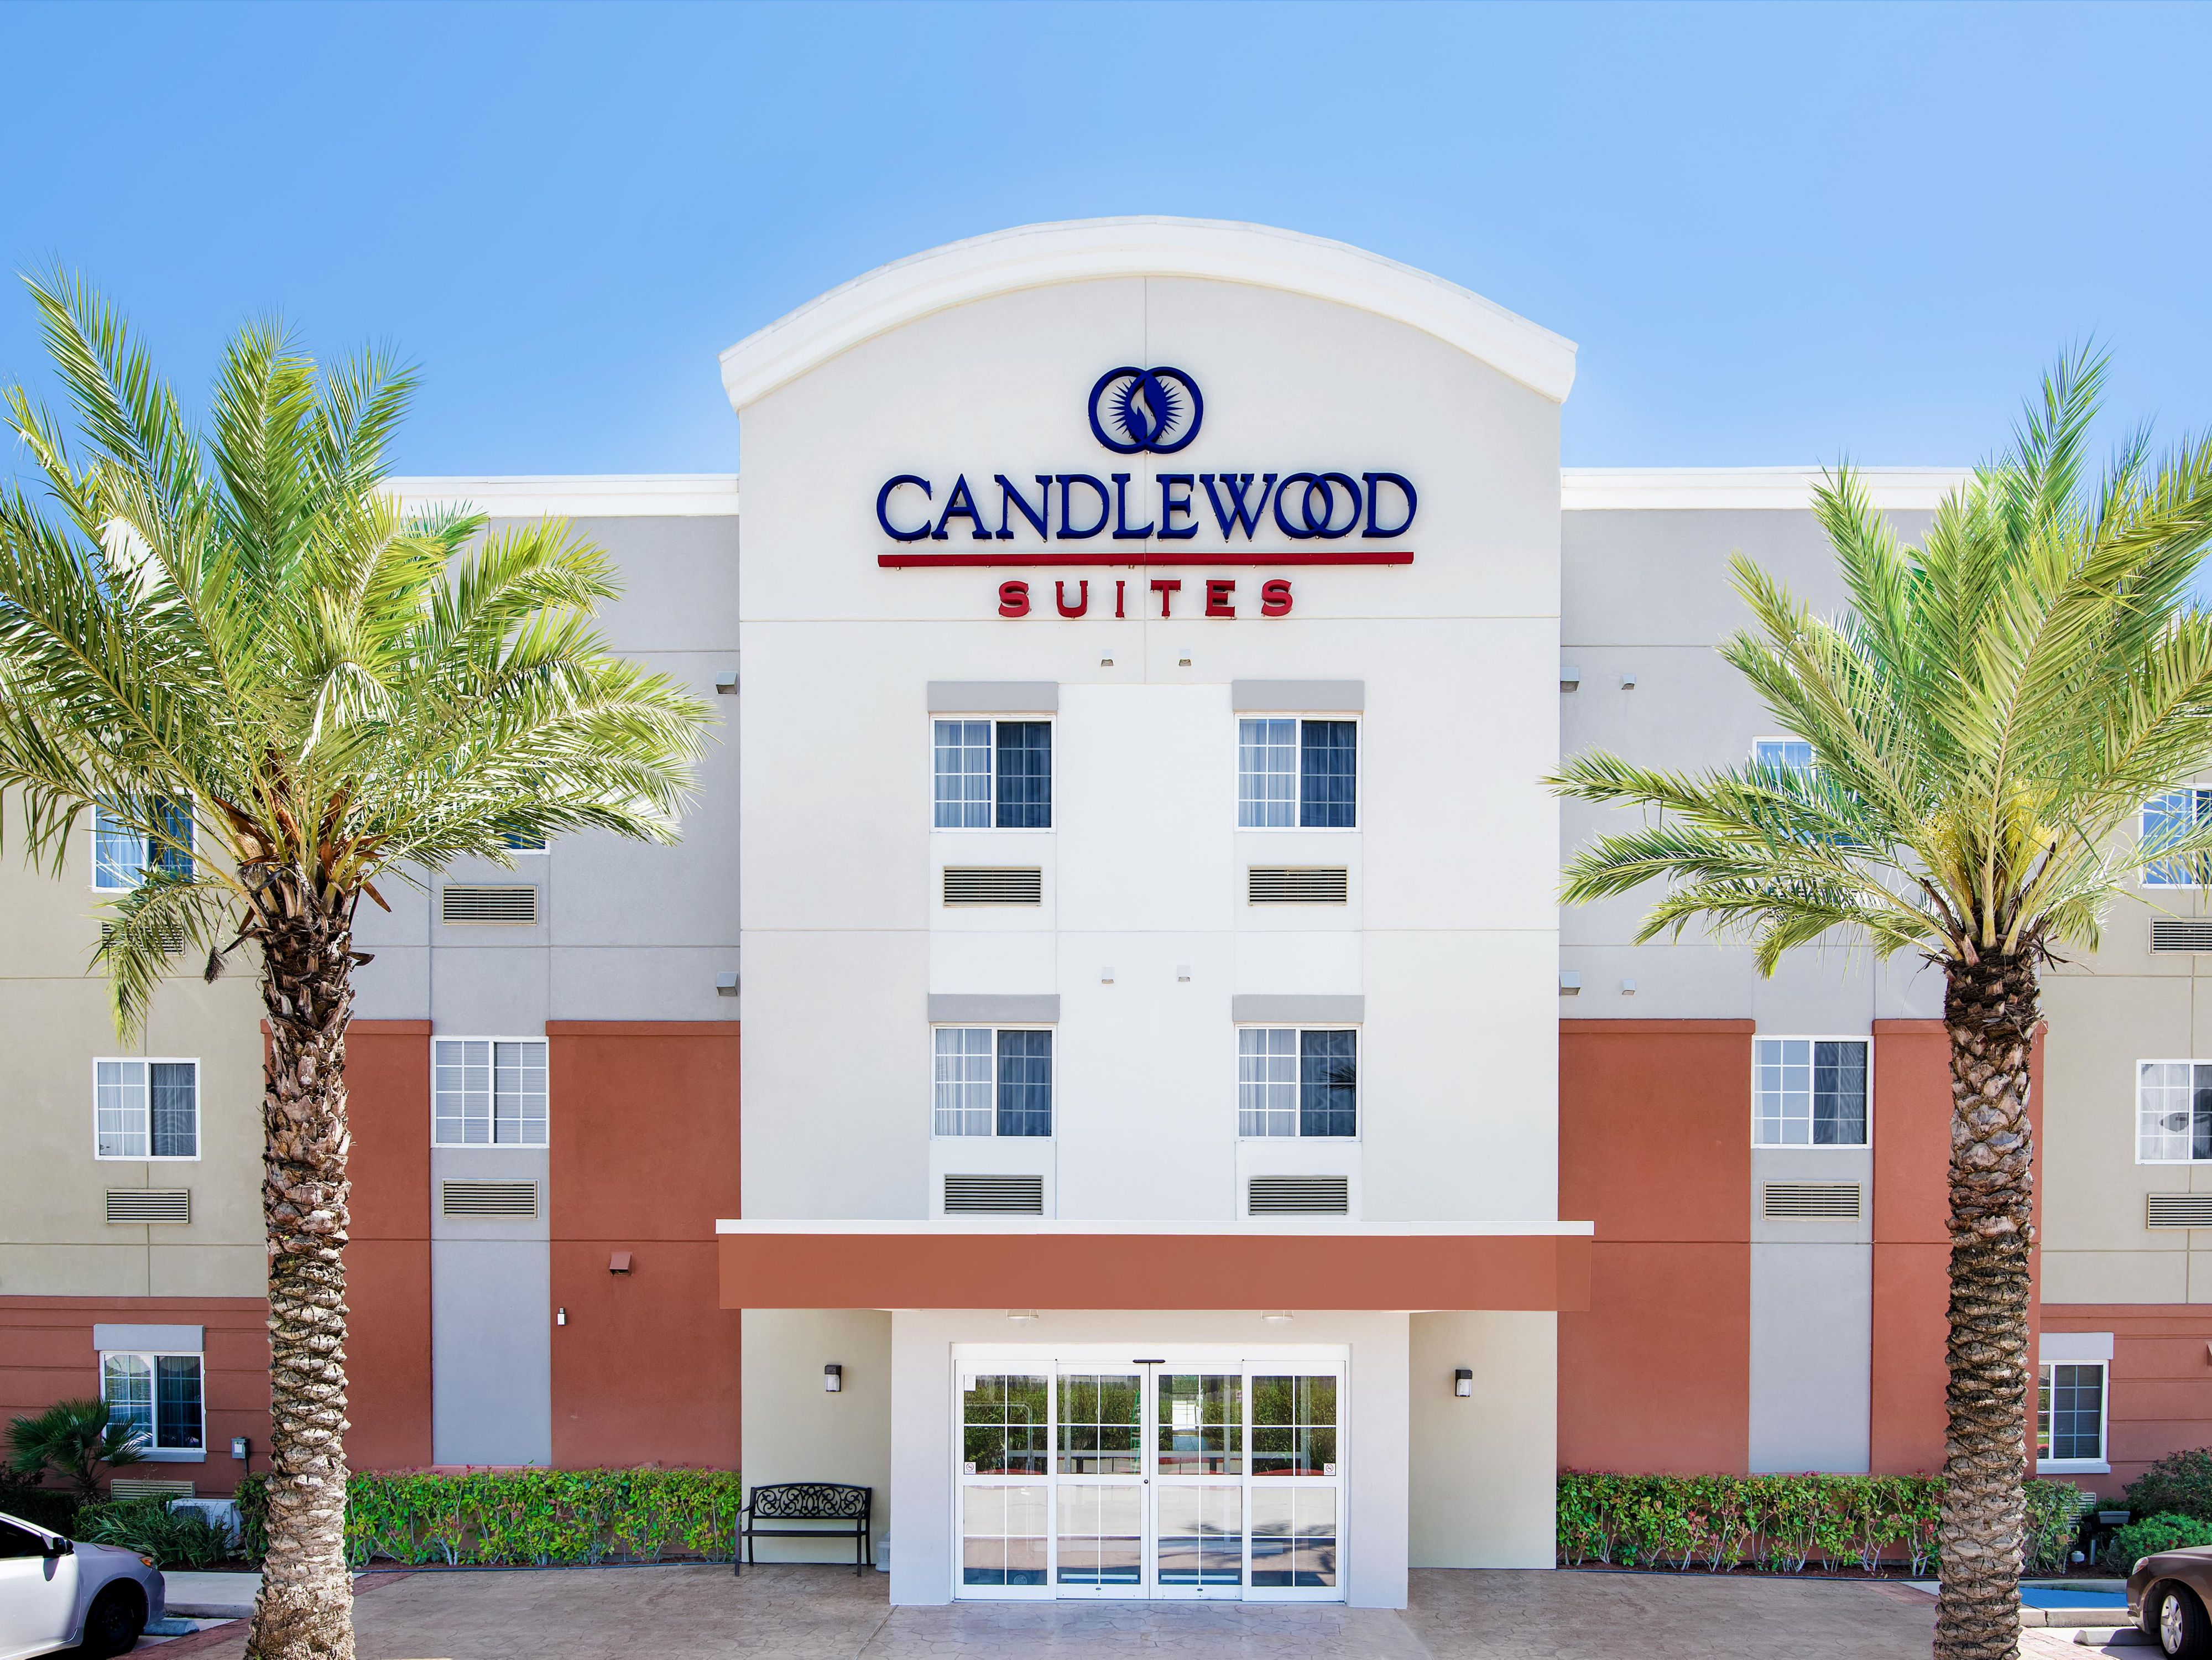 Houston Hotels Candlewood Suites Nw Willowbrook Extended Stay Hotel In Texas